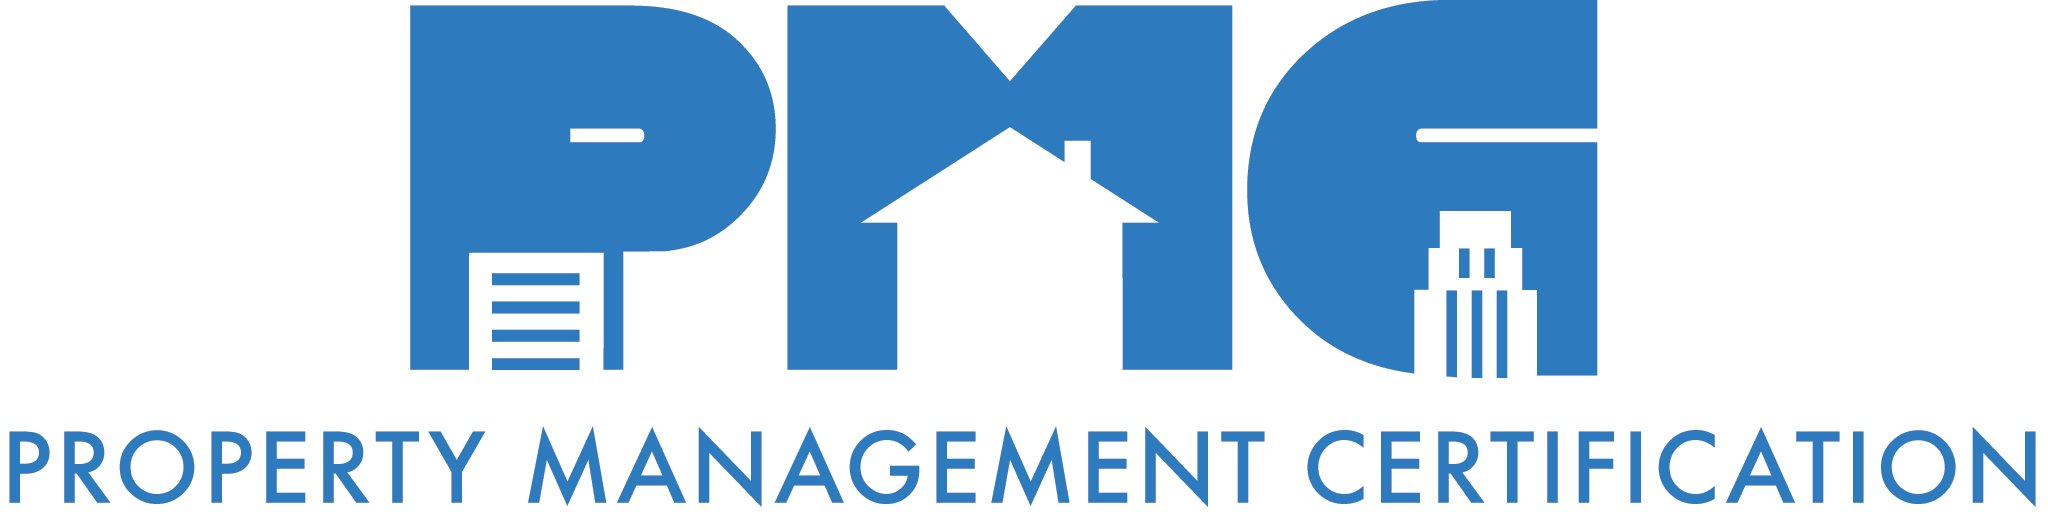 Property Management Certification